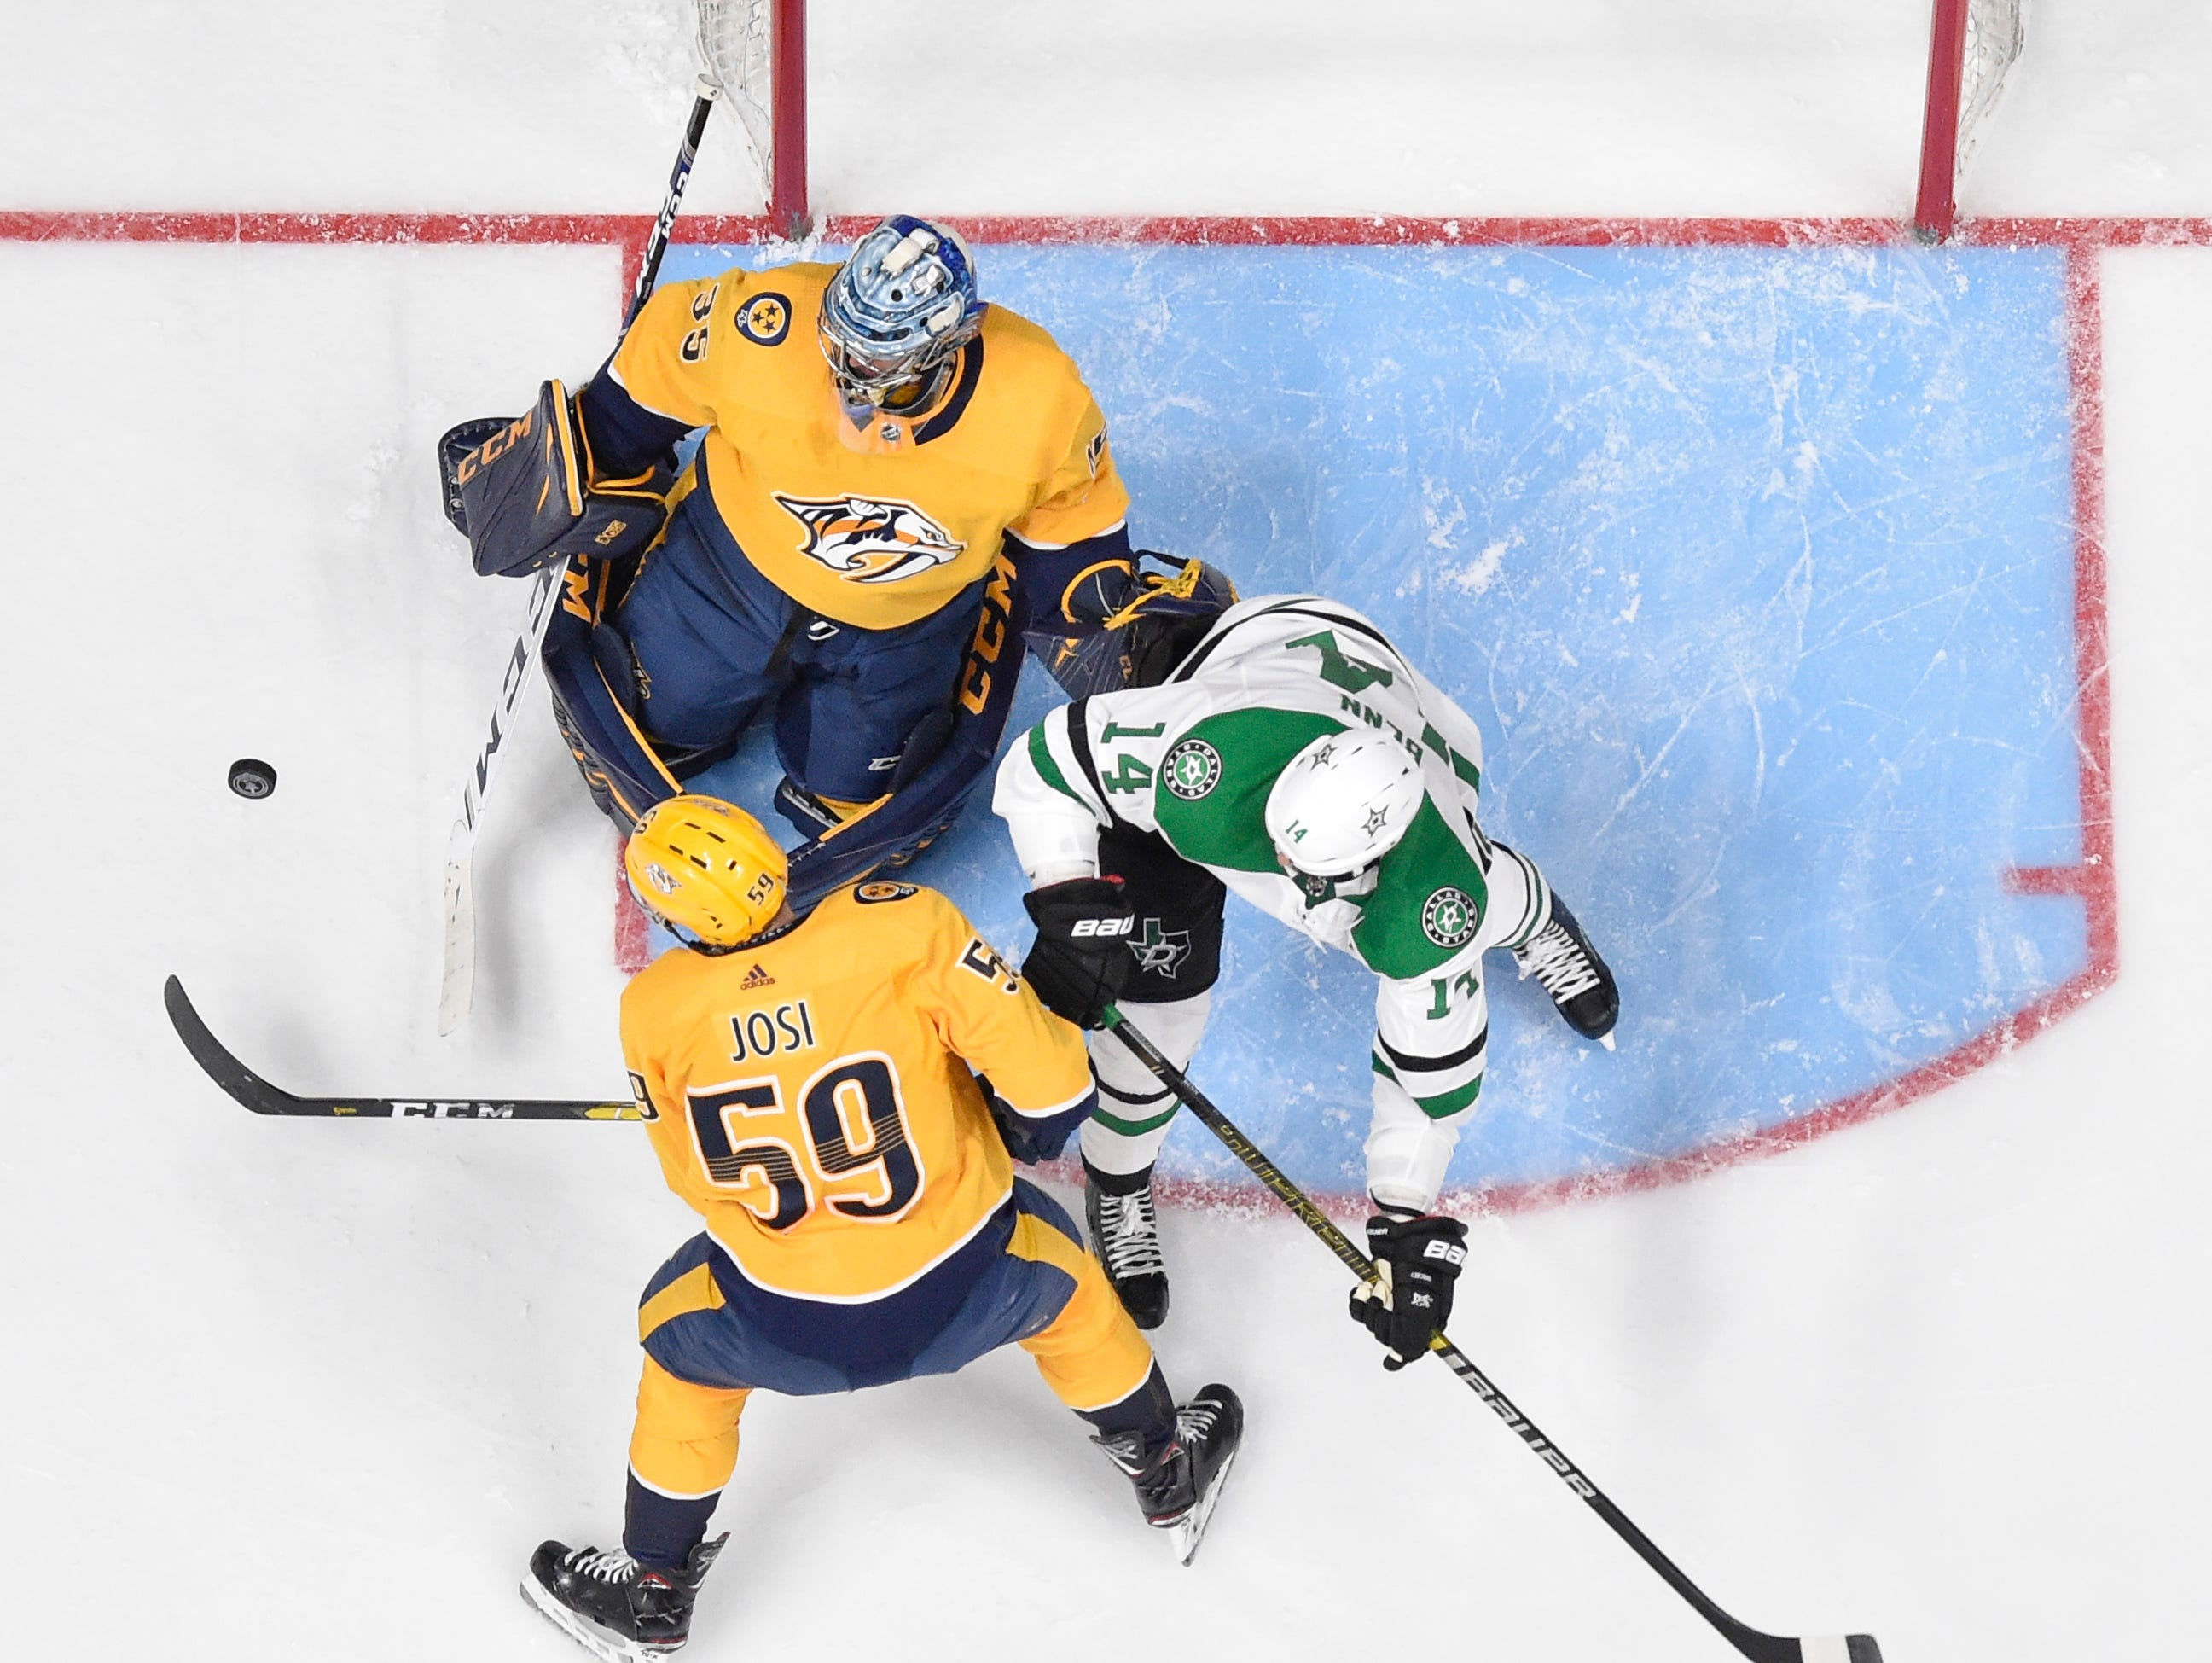 Nashville Predators goaltender Pekka Rinne (35) and defenseman Roman Josi (59) battle Dallas Stars left wing Jamie Benn (14) during the third period of the divisional semifinal game at Bridgestone Arena in Nashville, Tenn., Wednesday, April 10, 2019.